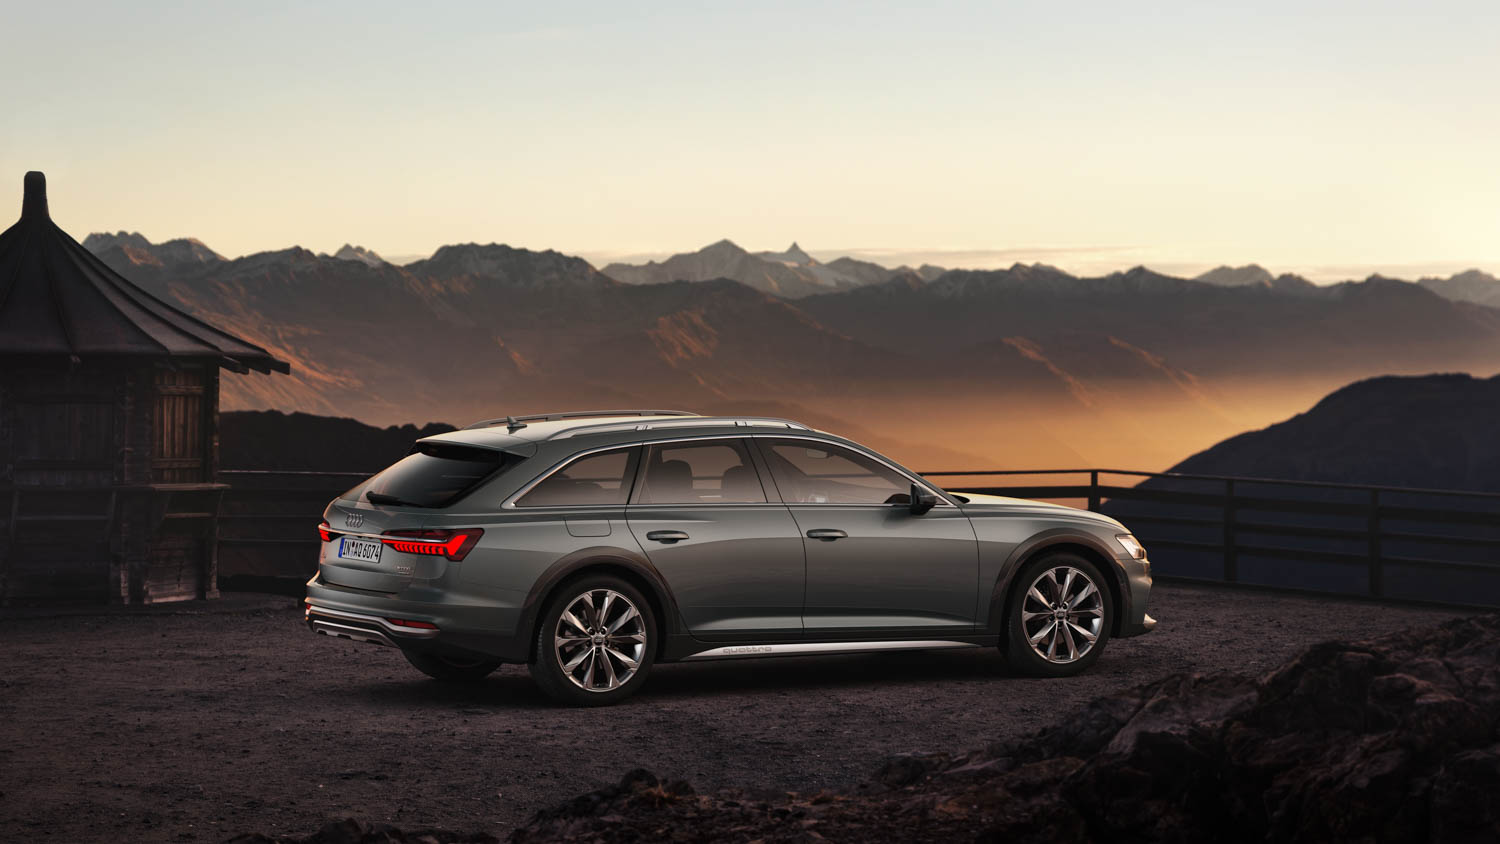 After 15 years, the Audi A6 allroad returns to America